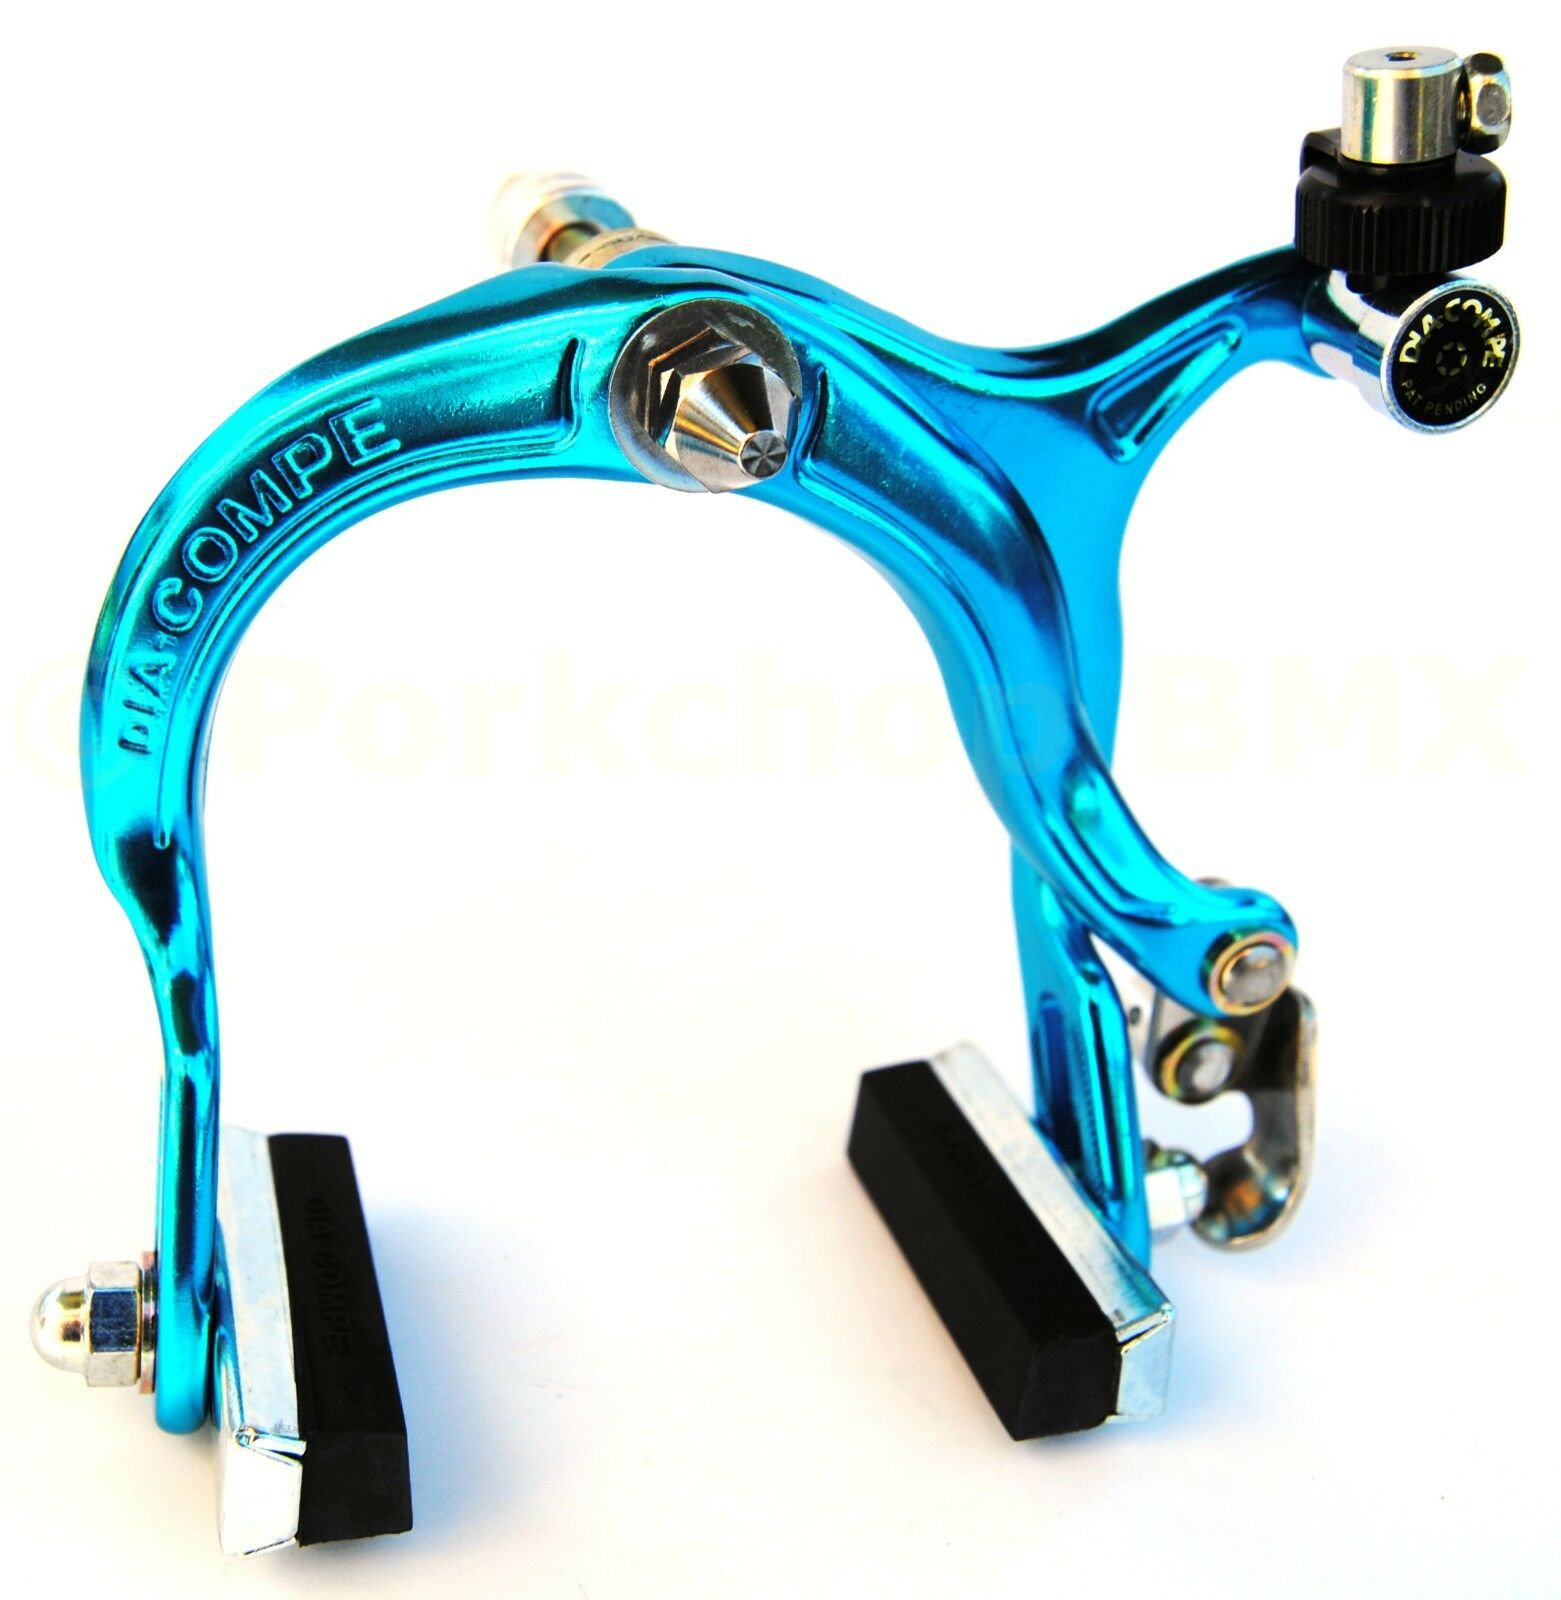 Dia-Compe old school BMX reissue 883 Nippon bicycle FRONT brake caliper blueeE